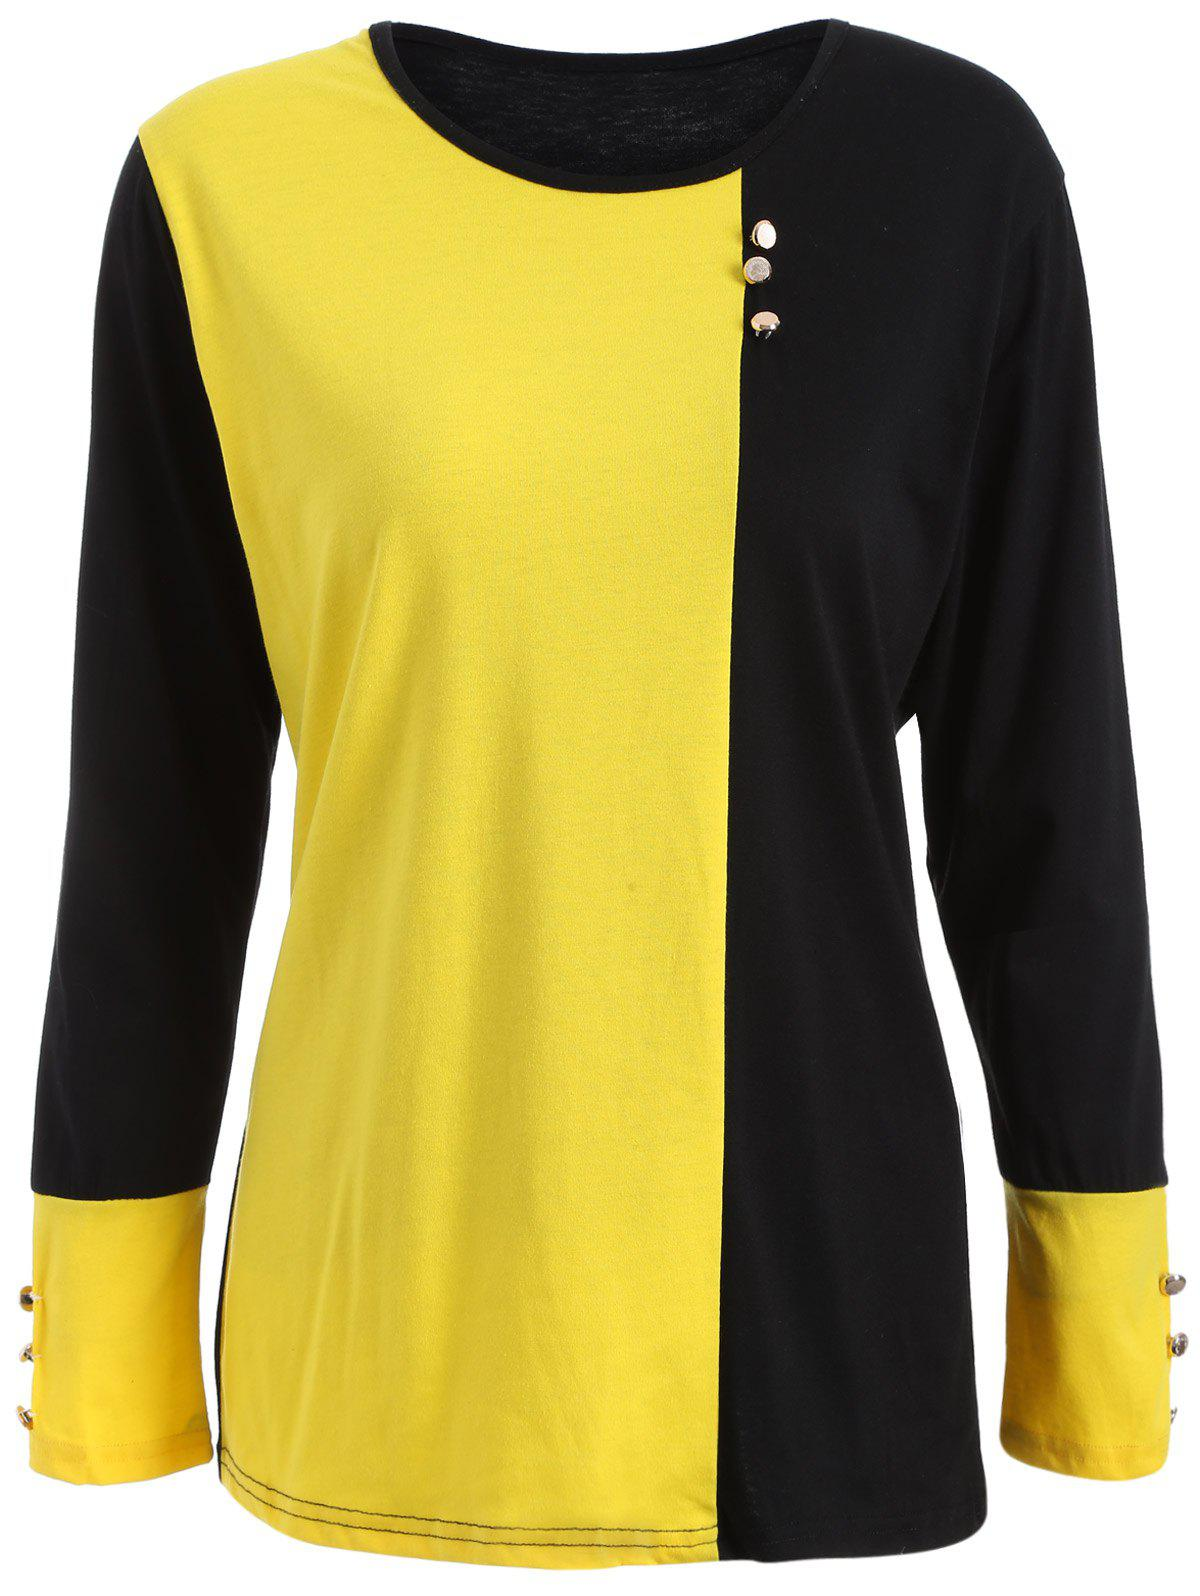 Plus Size Panel T-Shirt with Buttons - YELLOW/BLACK 2XL